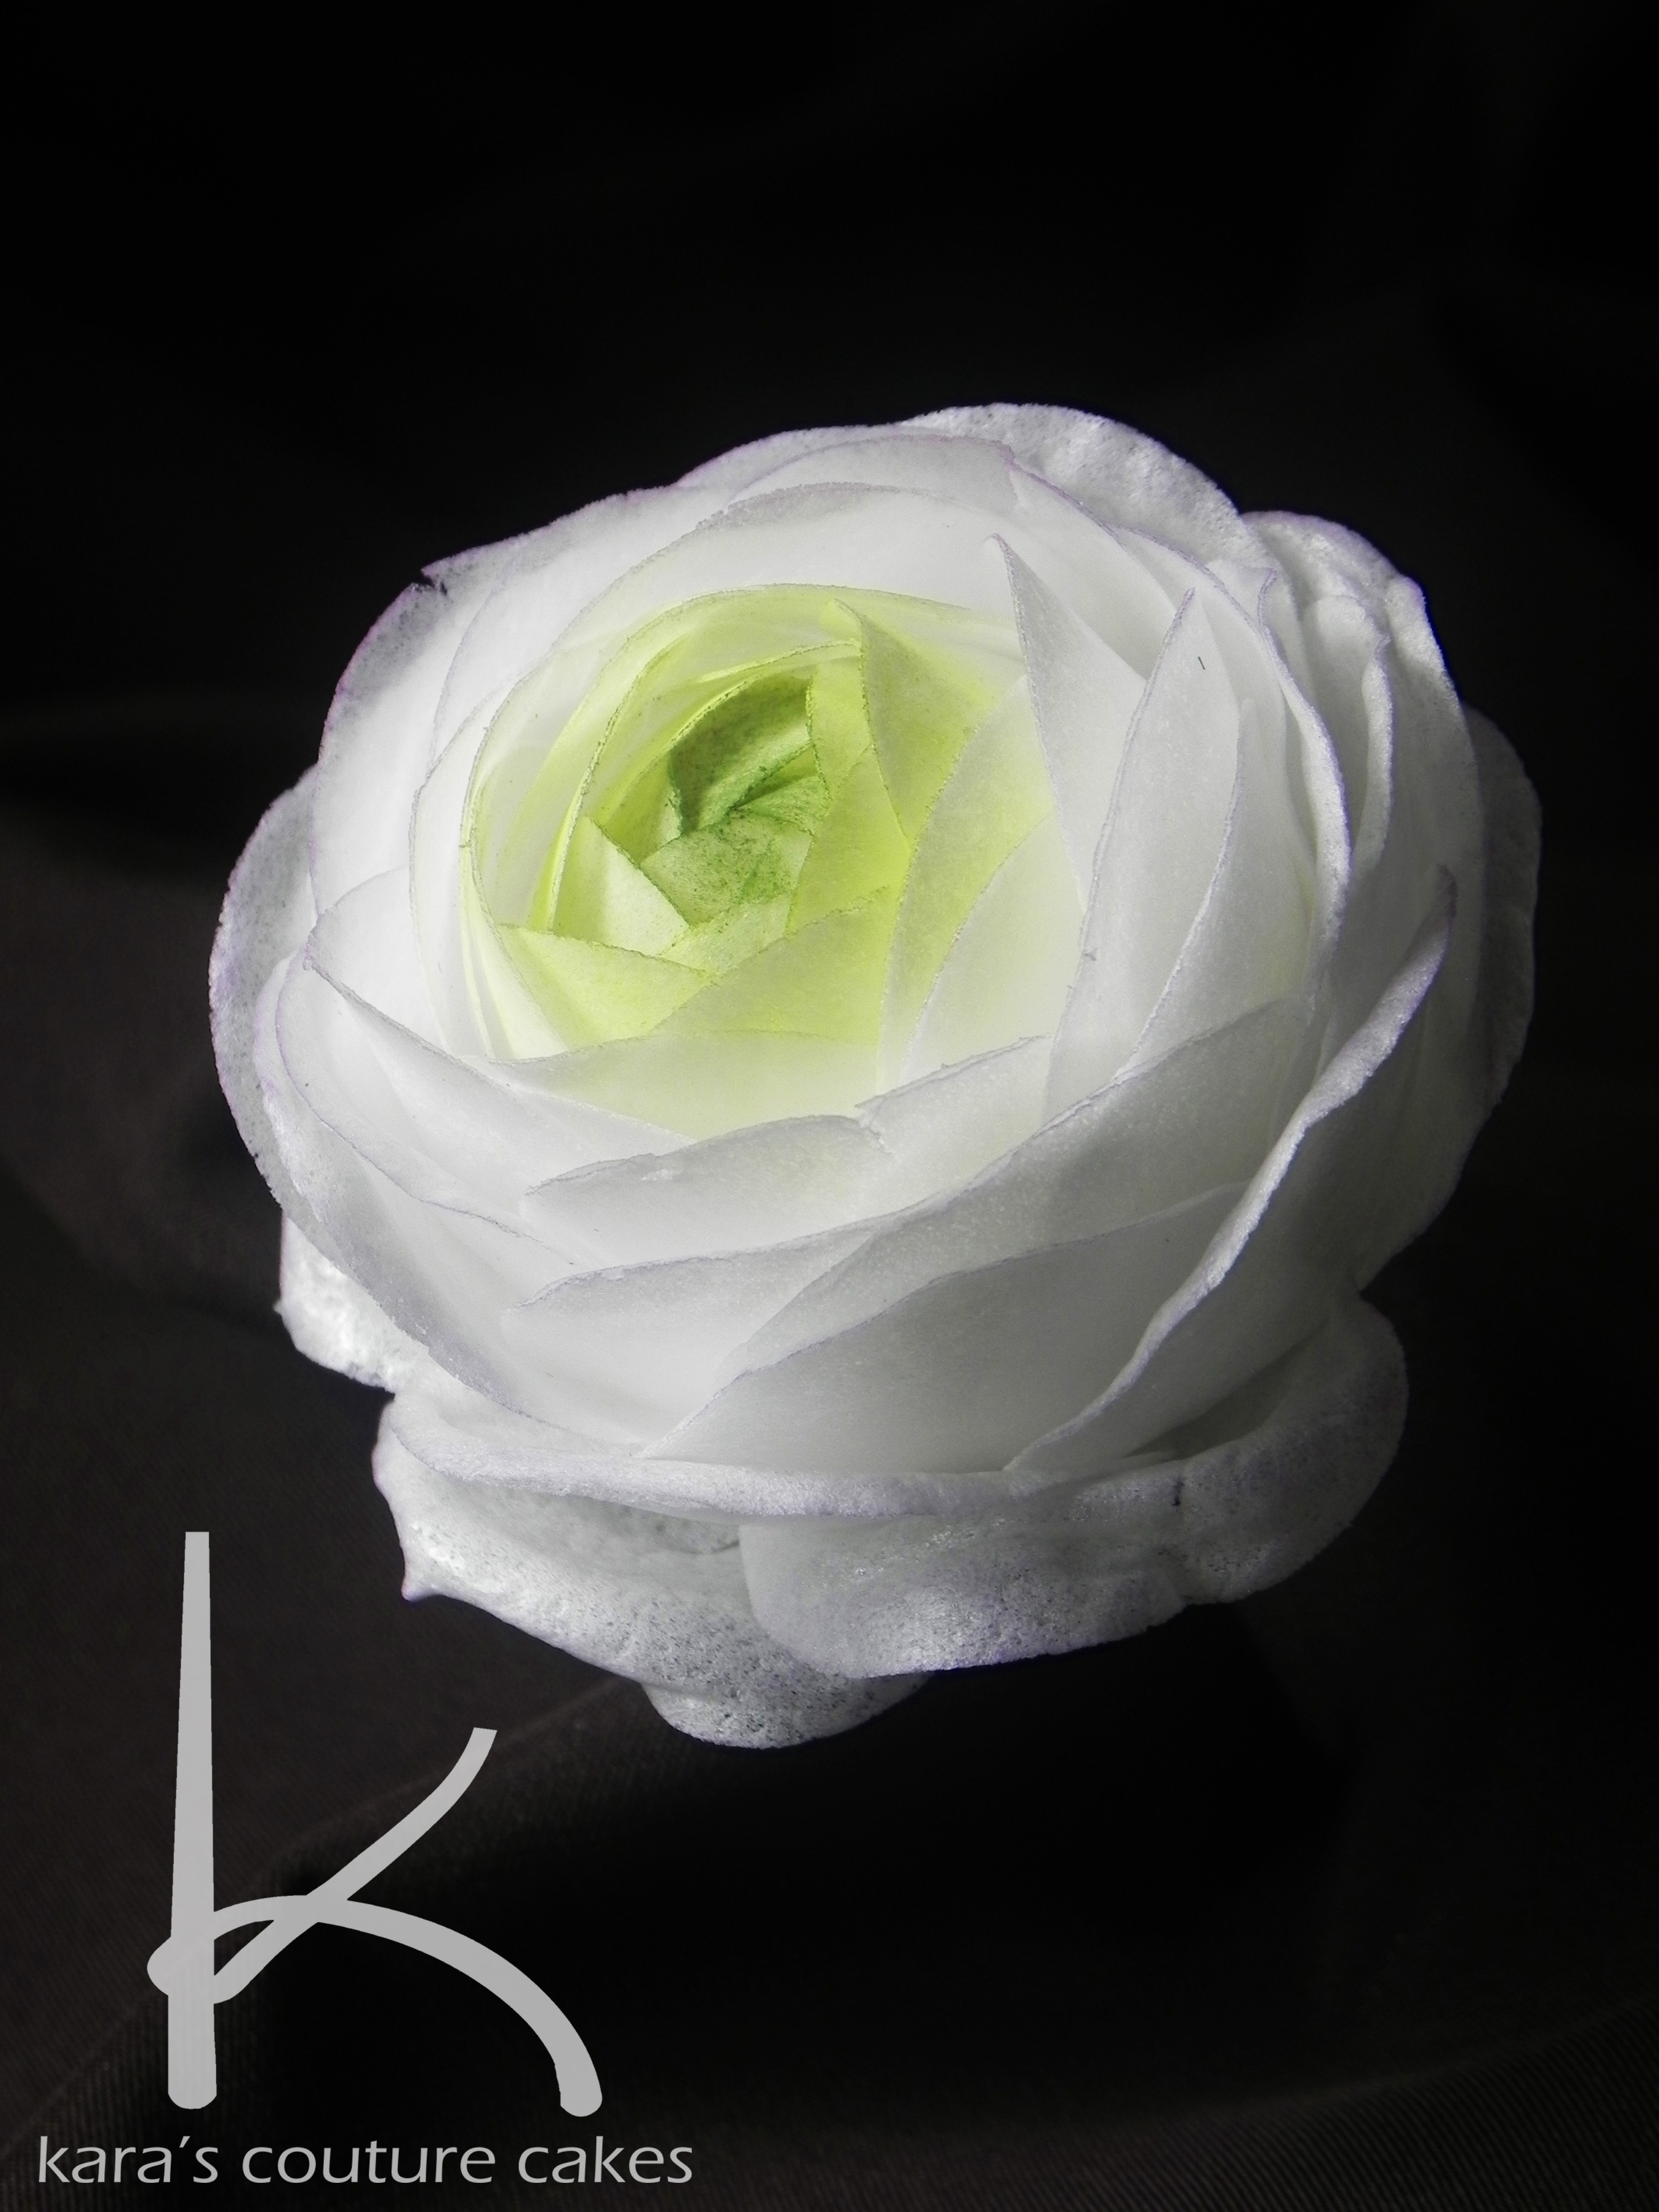 Wafer paper ranunculus tutorial cakecentral this flower took 20 minutes from punching the wafer paper to finishing dusting mightylinksfo